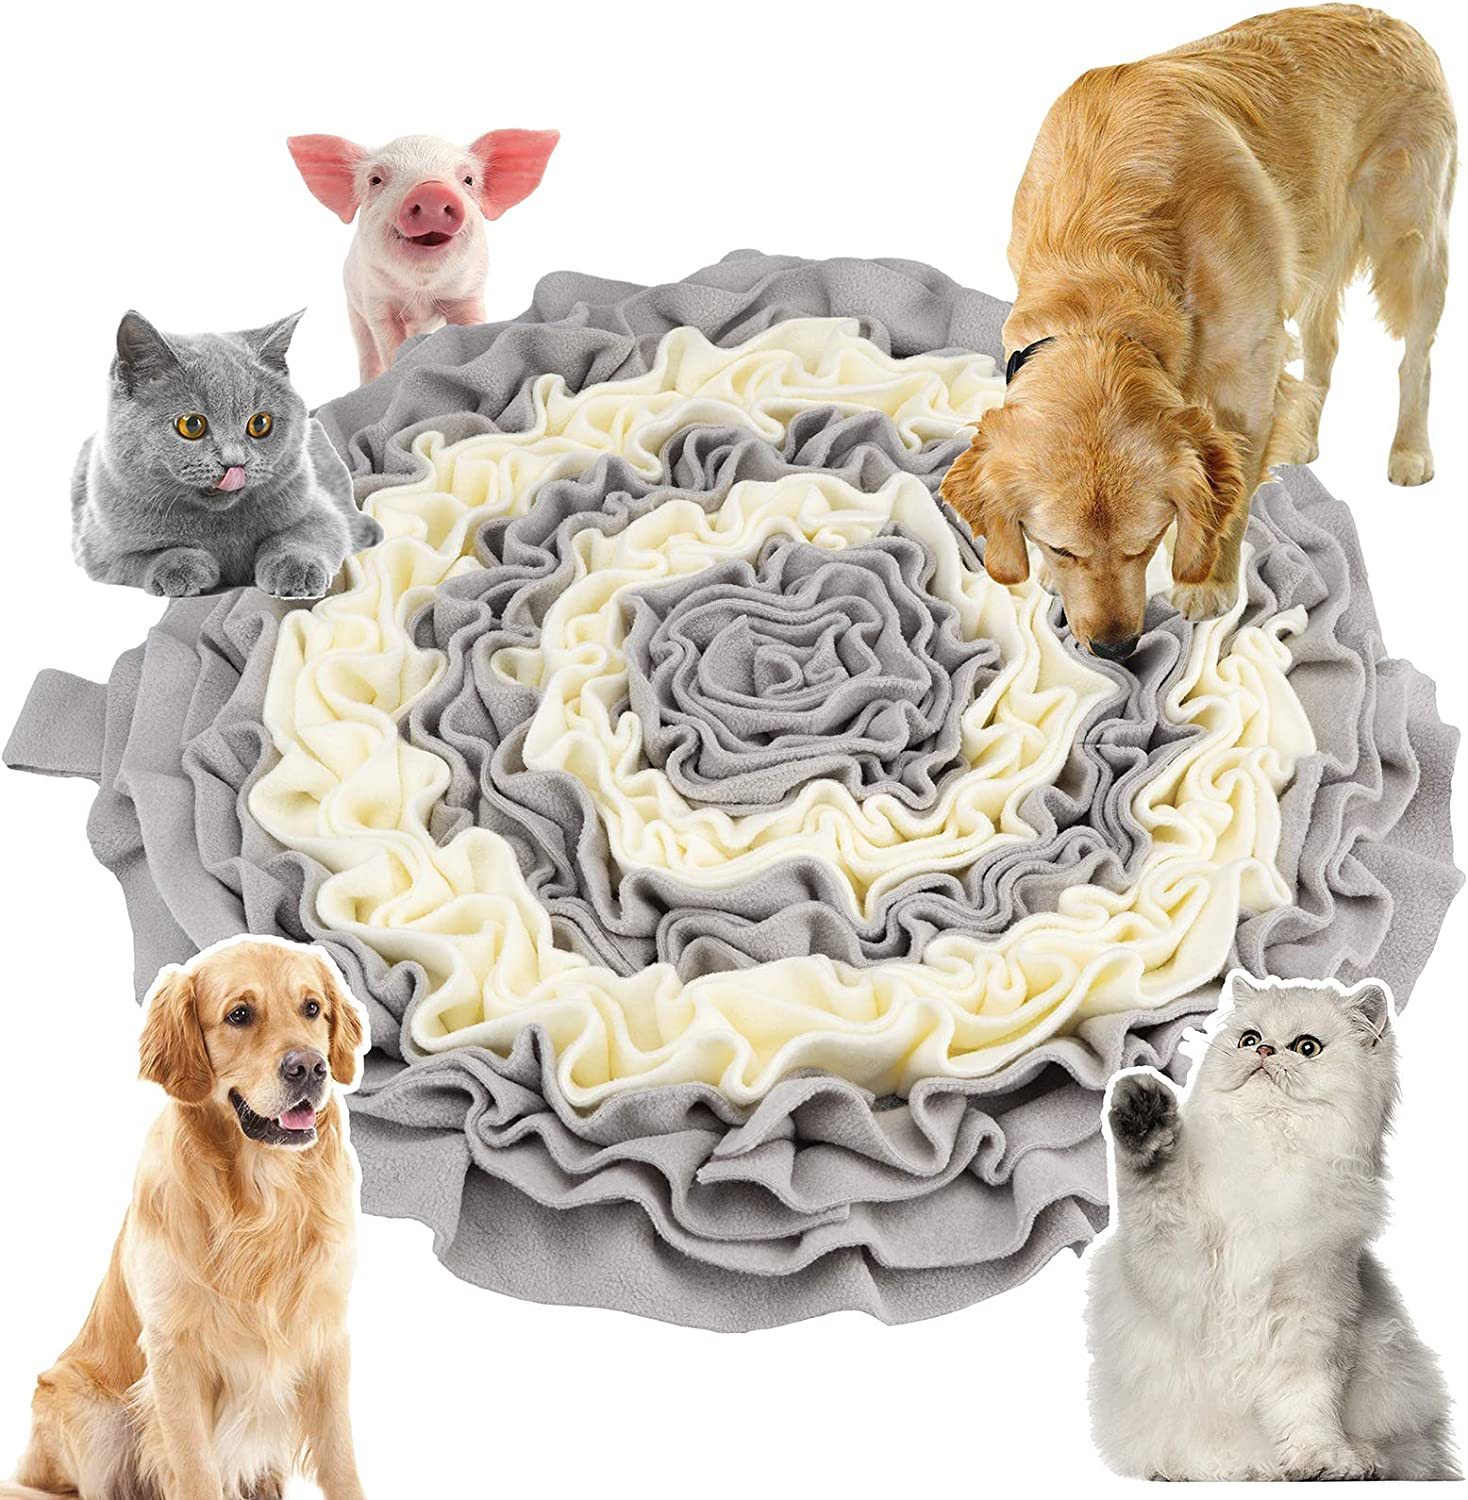 Routesun Snuffle Mat for Dogs Cats - Wooly Feeding Mat Pet, Encourages Natural Foraging Skills for Small Large Dogs Slow Feeder Puzzle Toy, Easy to Fill, Durable and Machine Washable